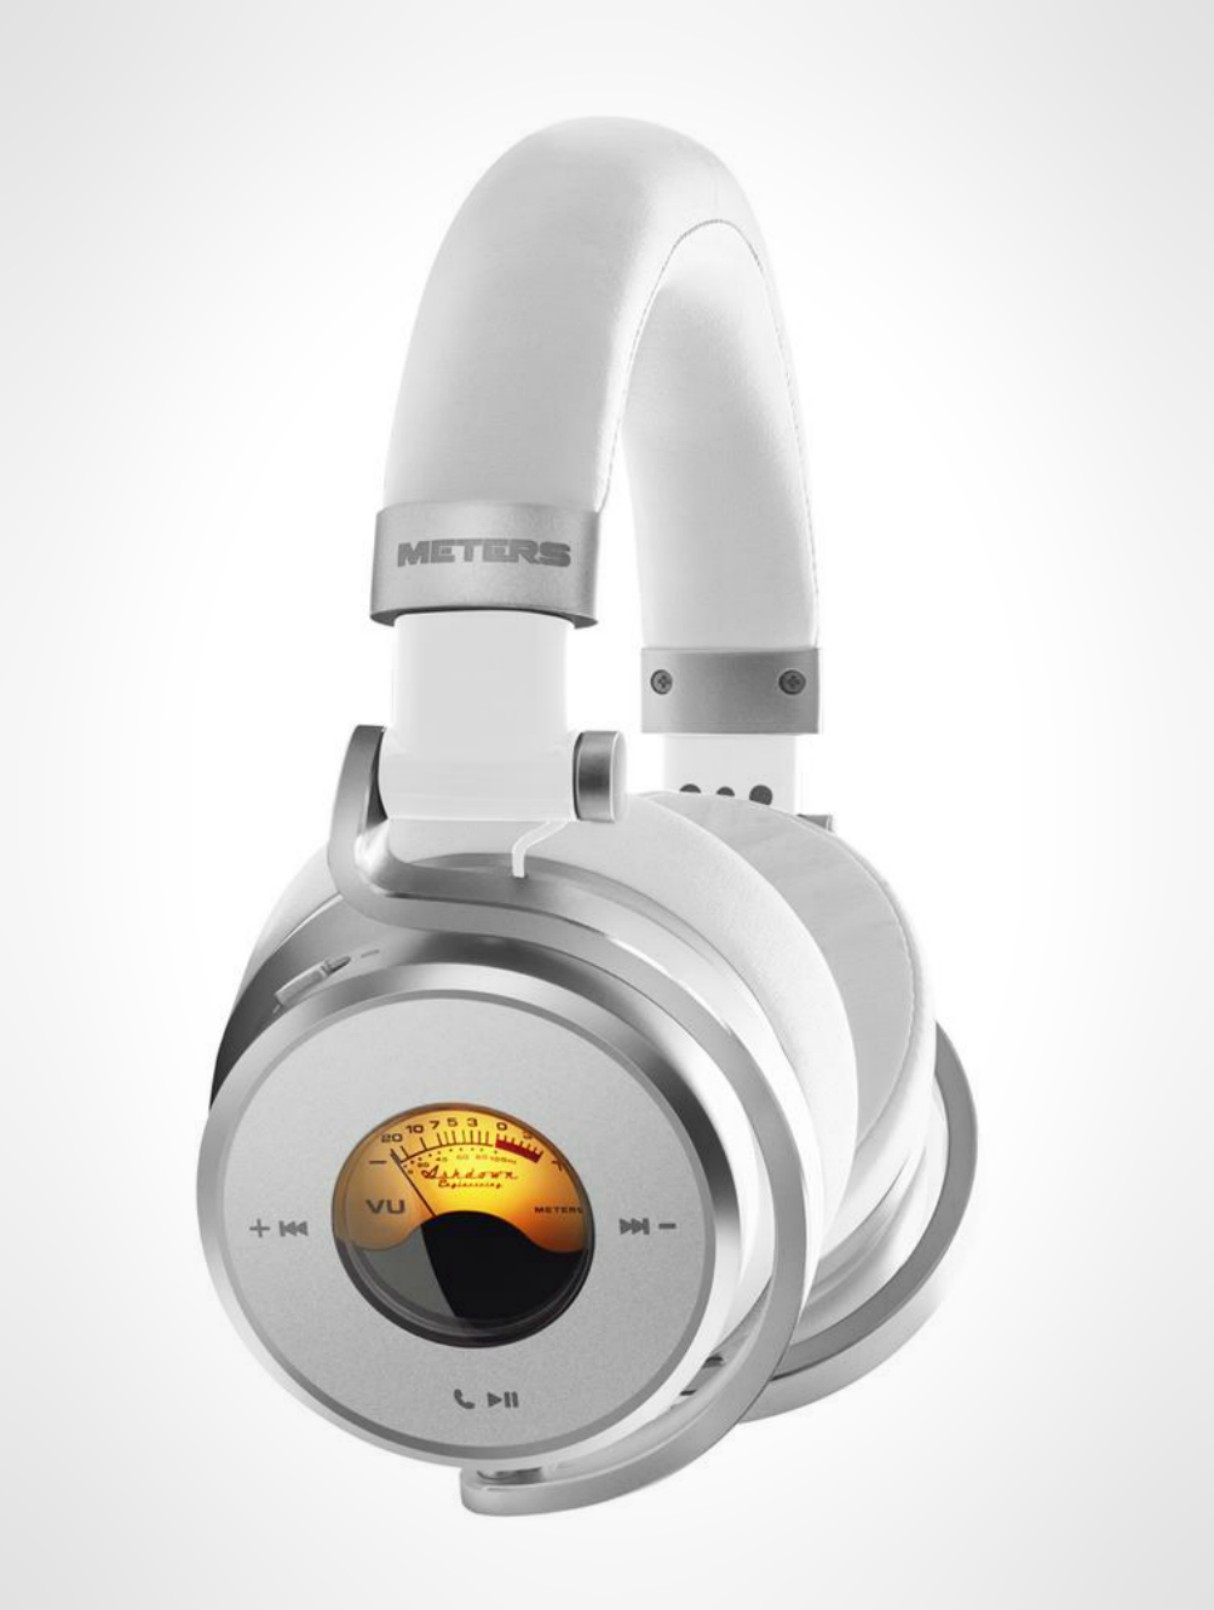 Meters Music Launches Wireless OV-1-B-CONNECT HD Headphones White